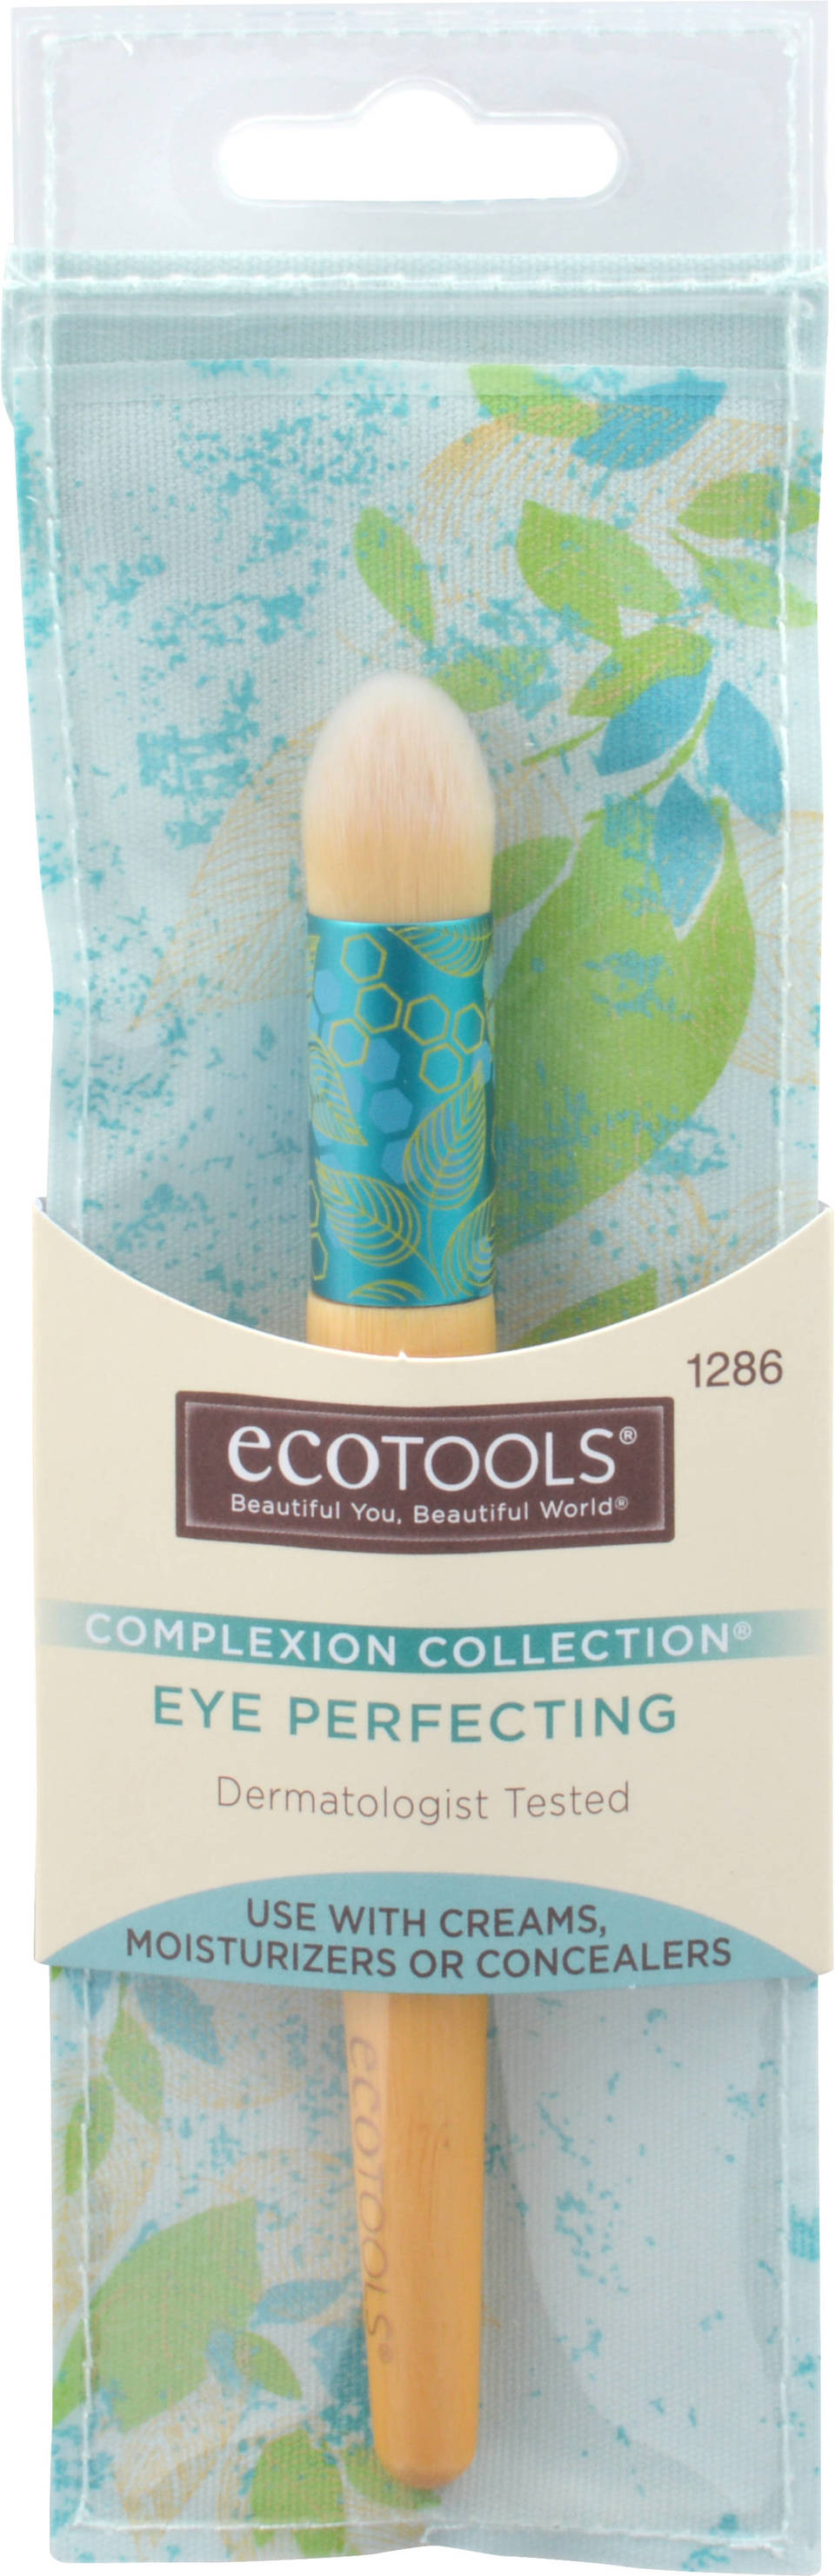 EcoTools Complexion Collection Eye Perfecting Makeup Brush ...